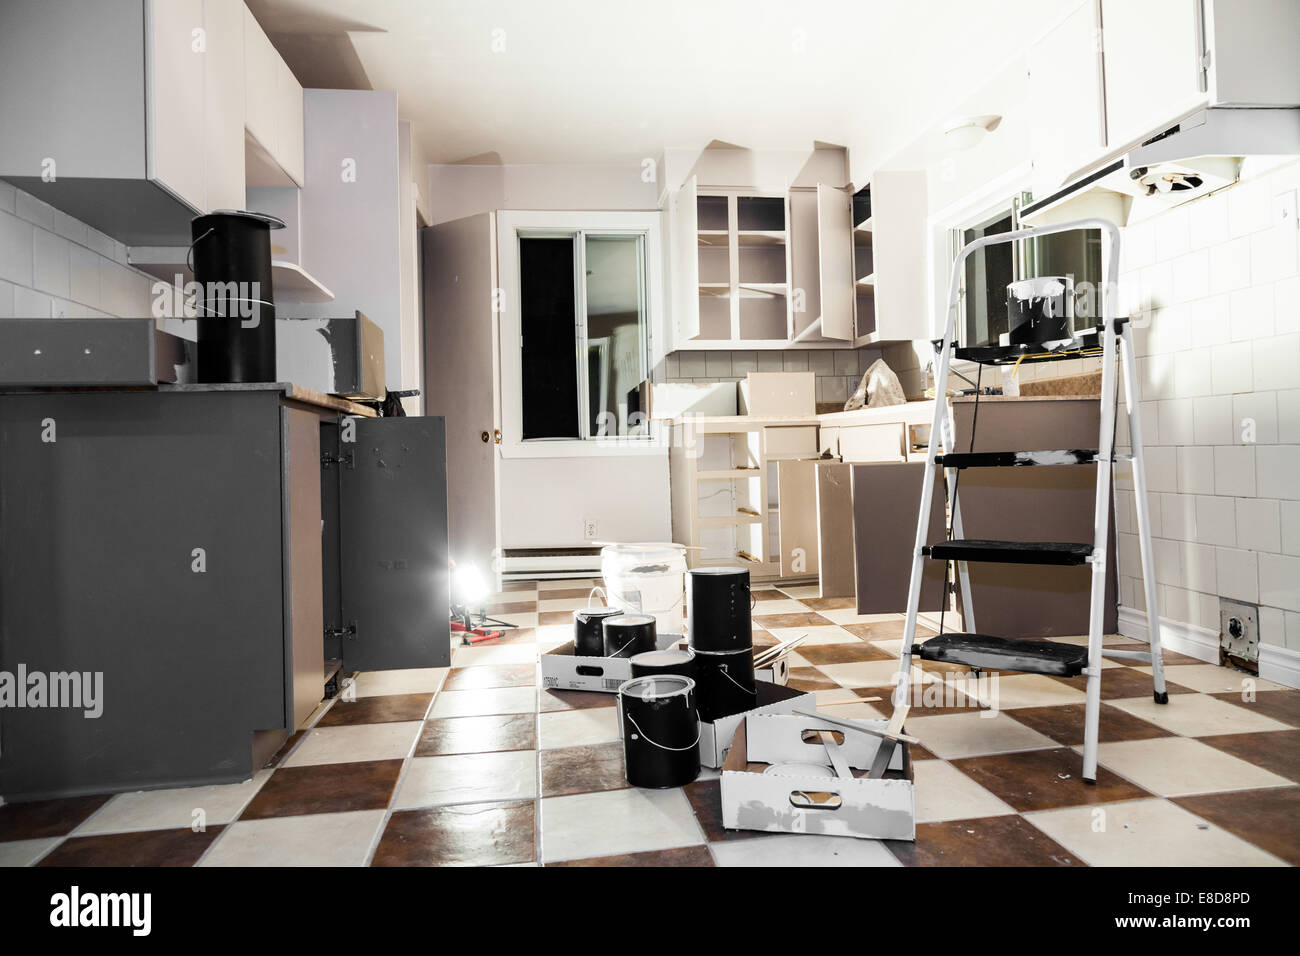 Mess of All kind of Painting Equipment in the Kitchen - Stock Image